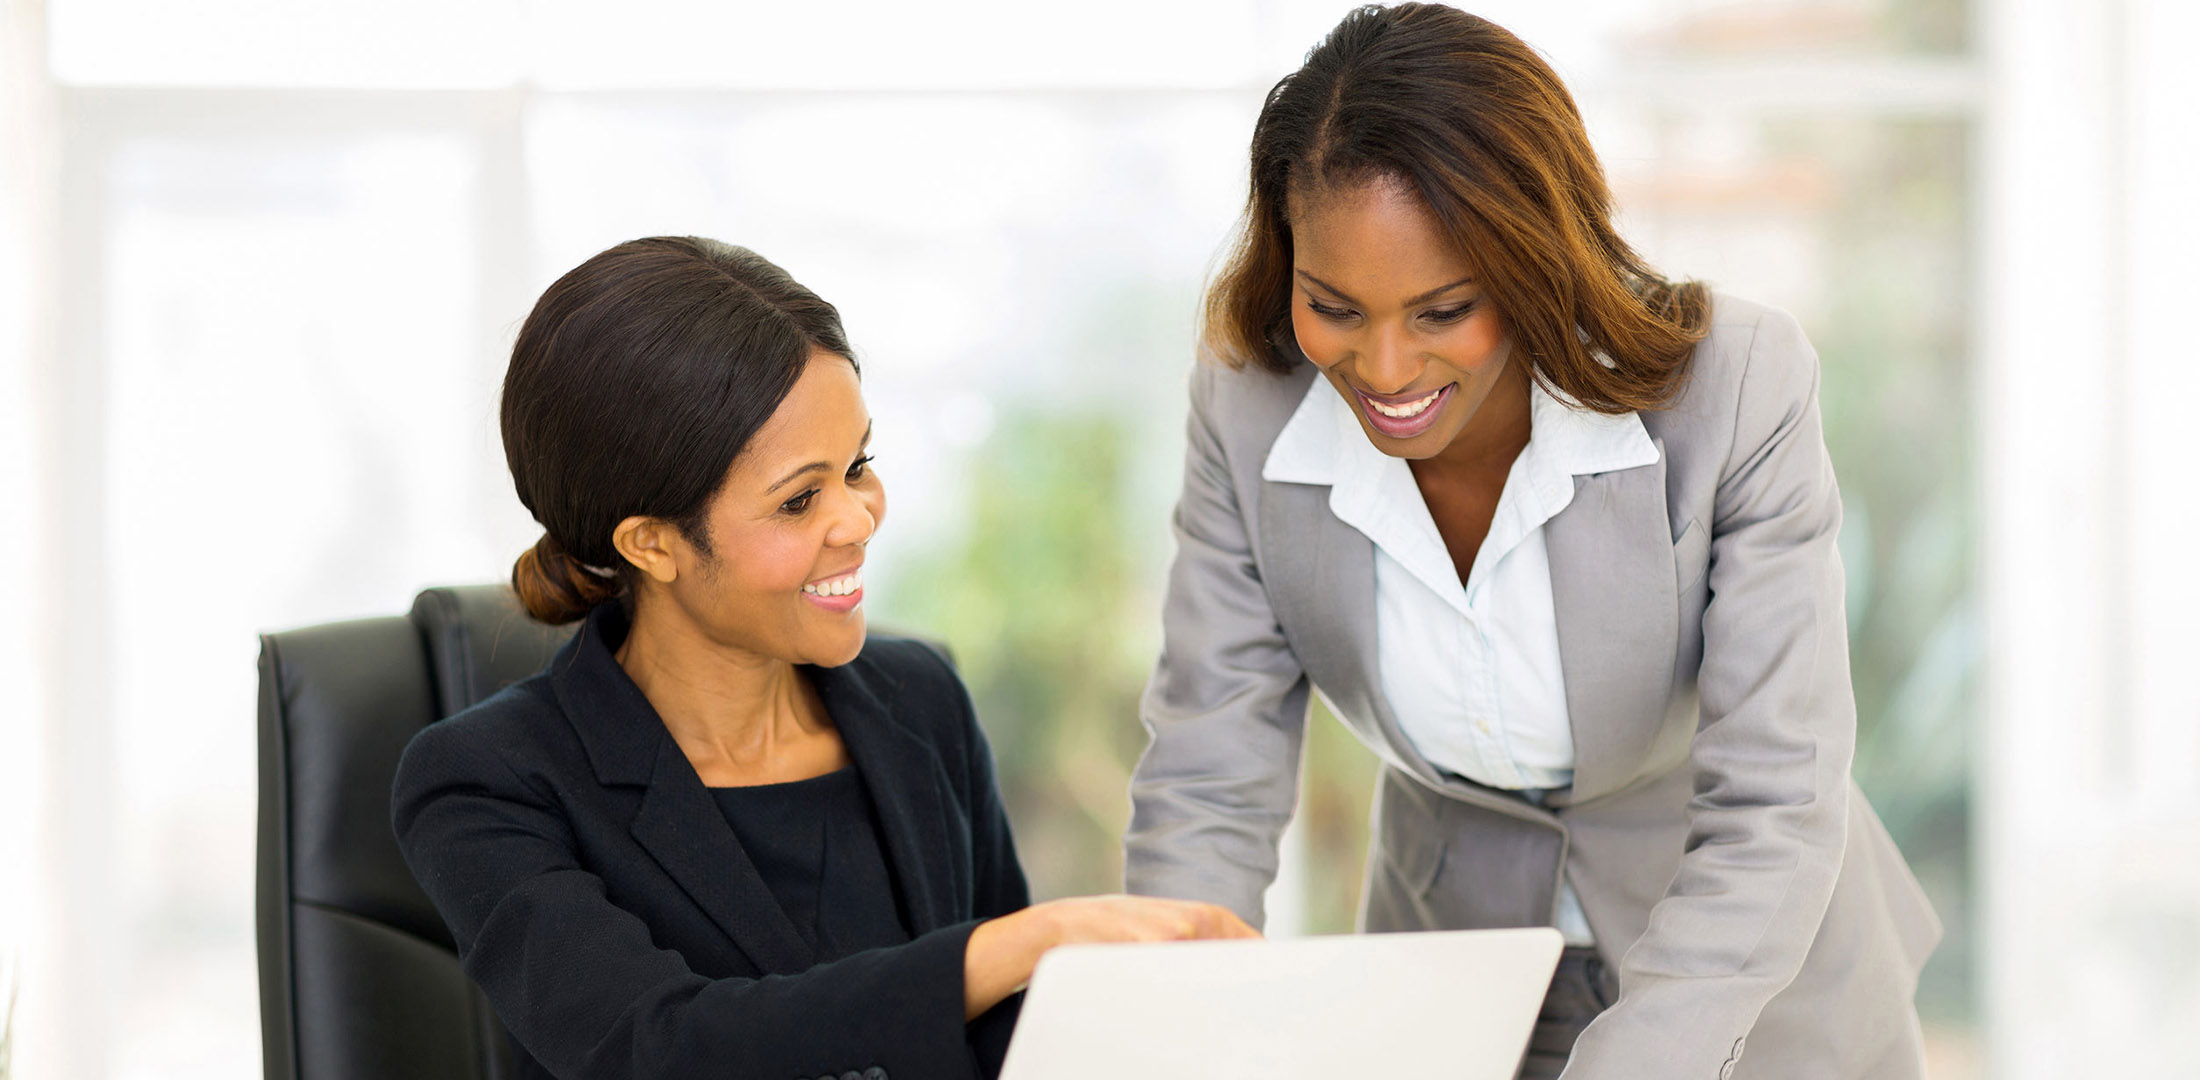 Two business women smiling and working together